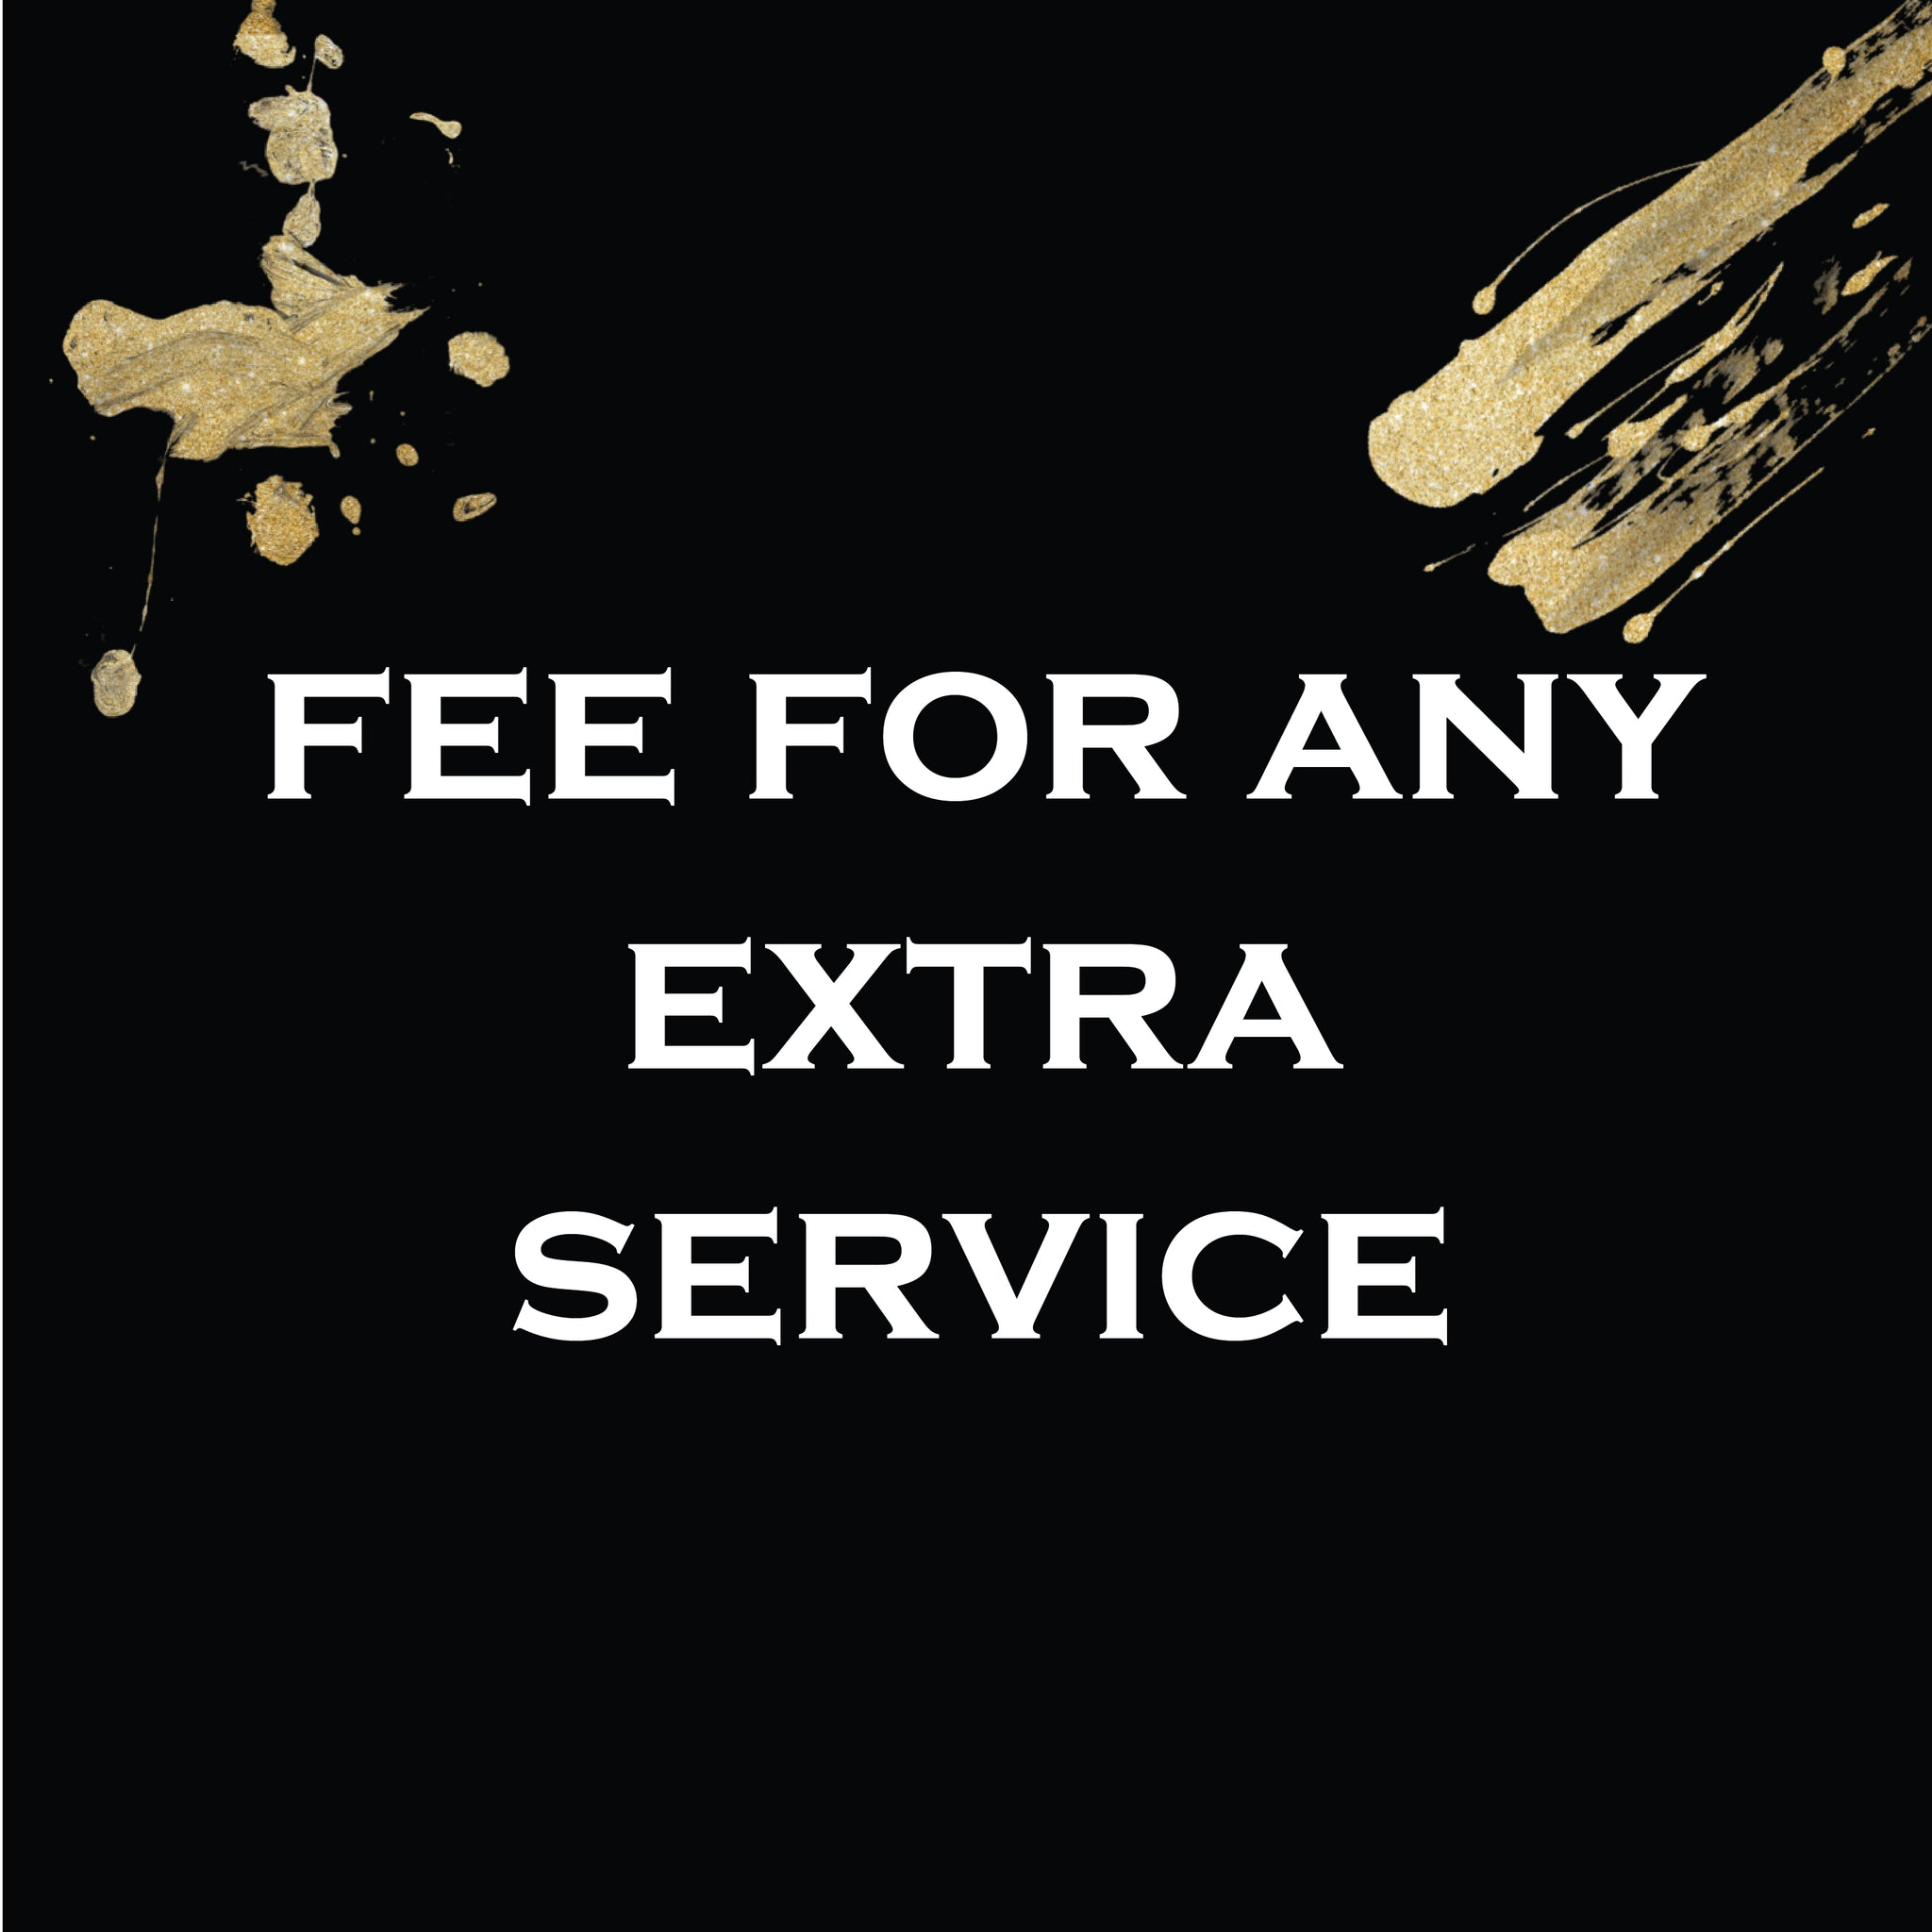 FEE FOR ANY EXTRA SERVICE